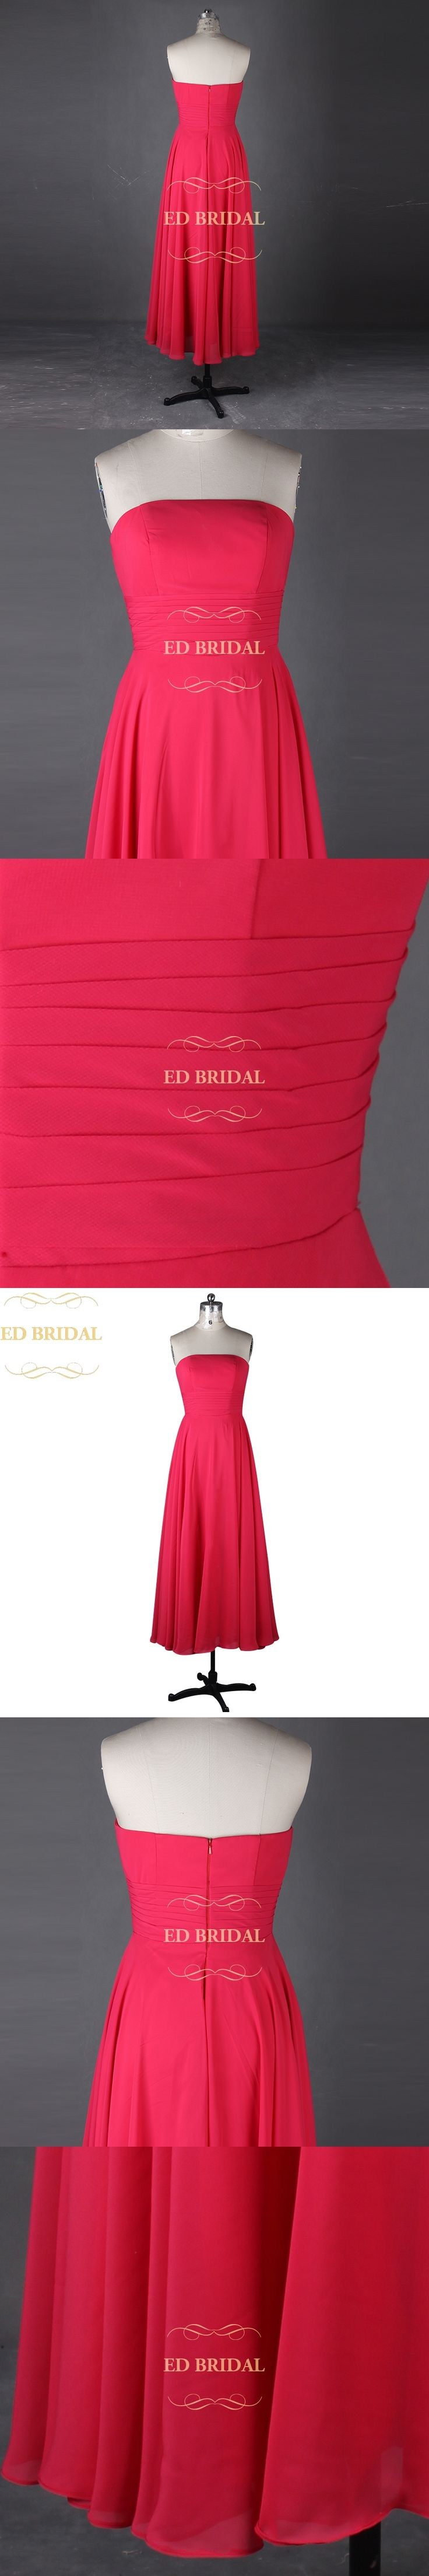 A Line Strapless Tea Length Fuchsia Bridesmaid Dress Maid of Honor Dress Women Special Occasion Formal Party Gown robe de soiree